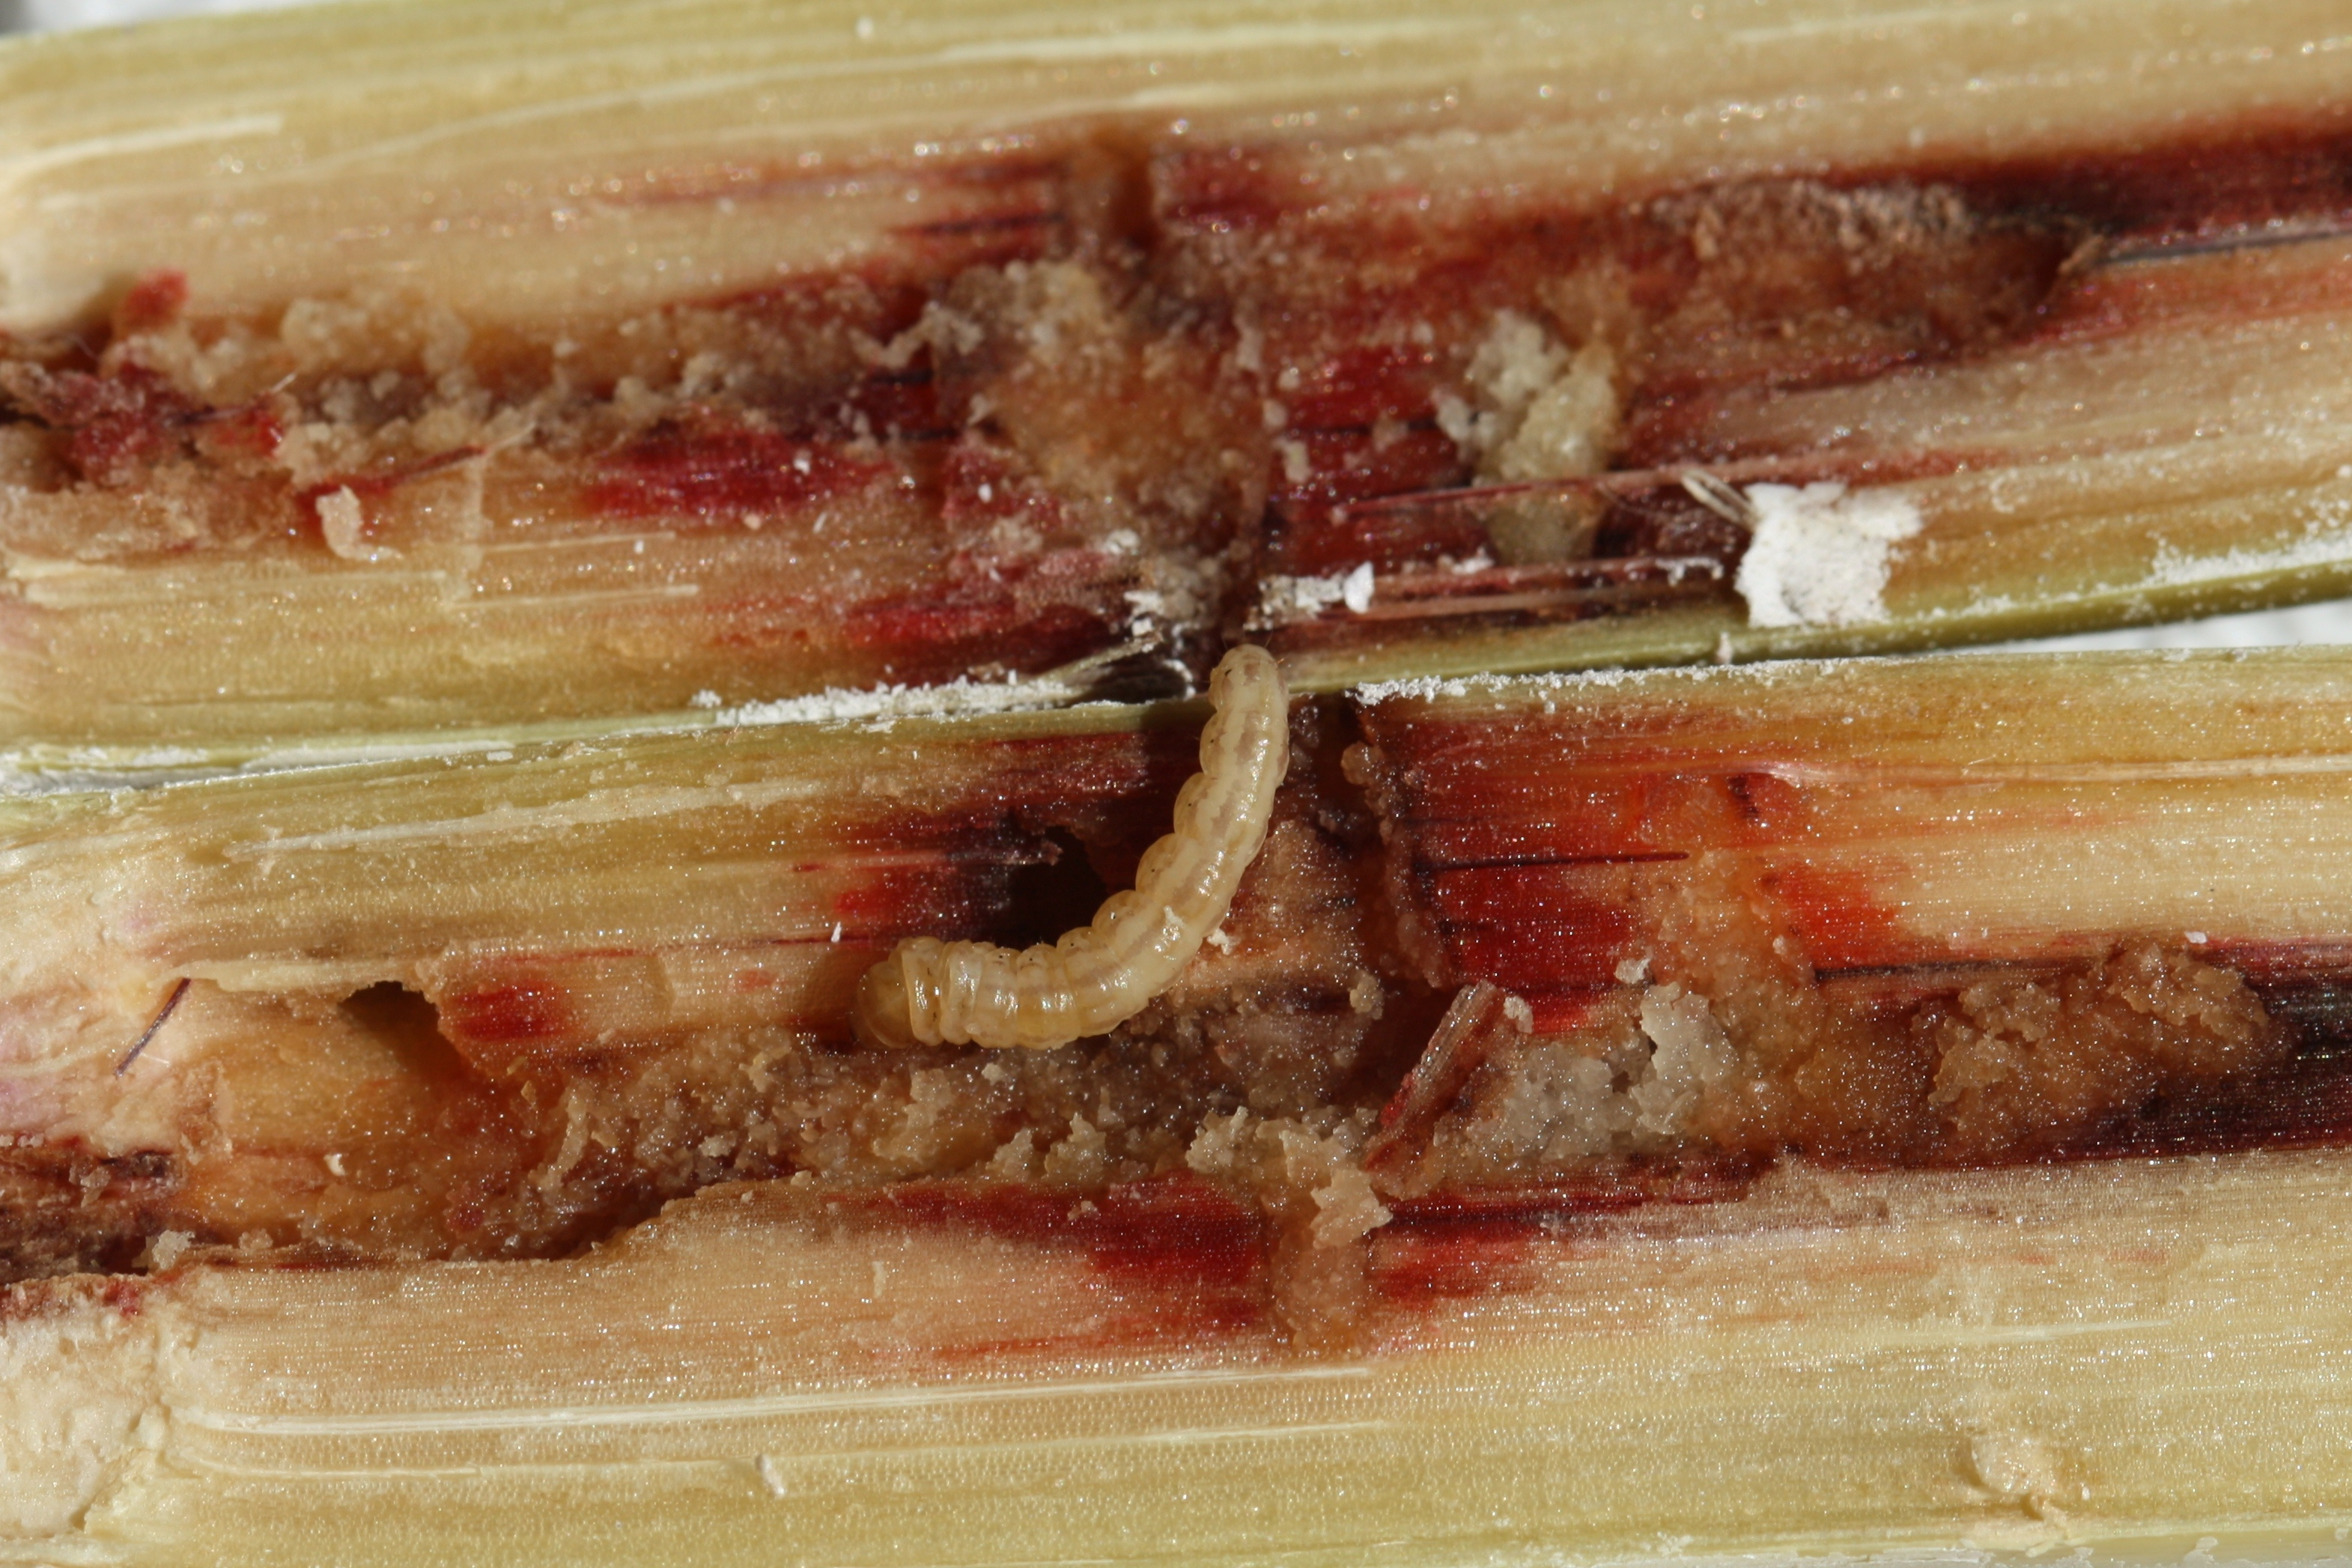 Mexican rice borer larva (approx. 4th instar).